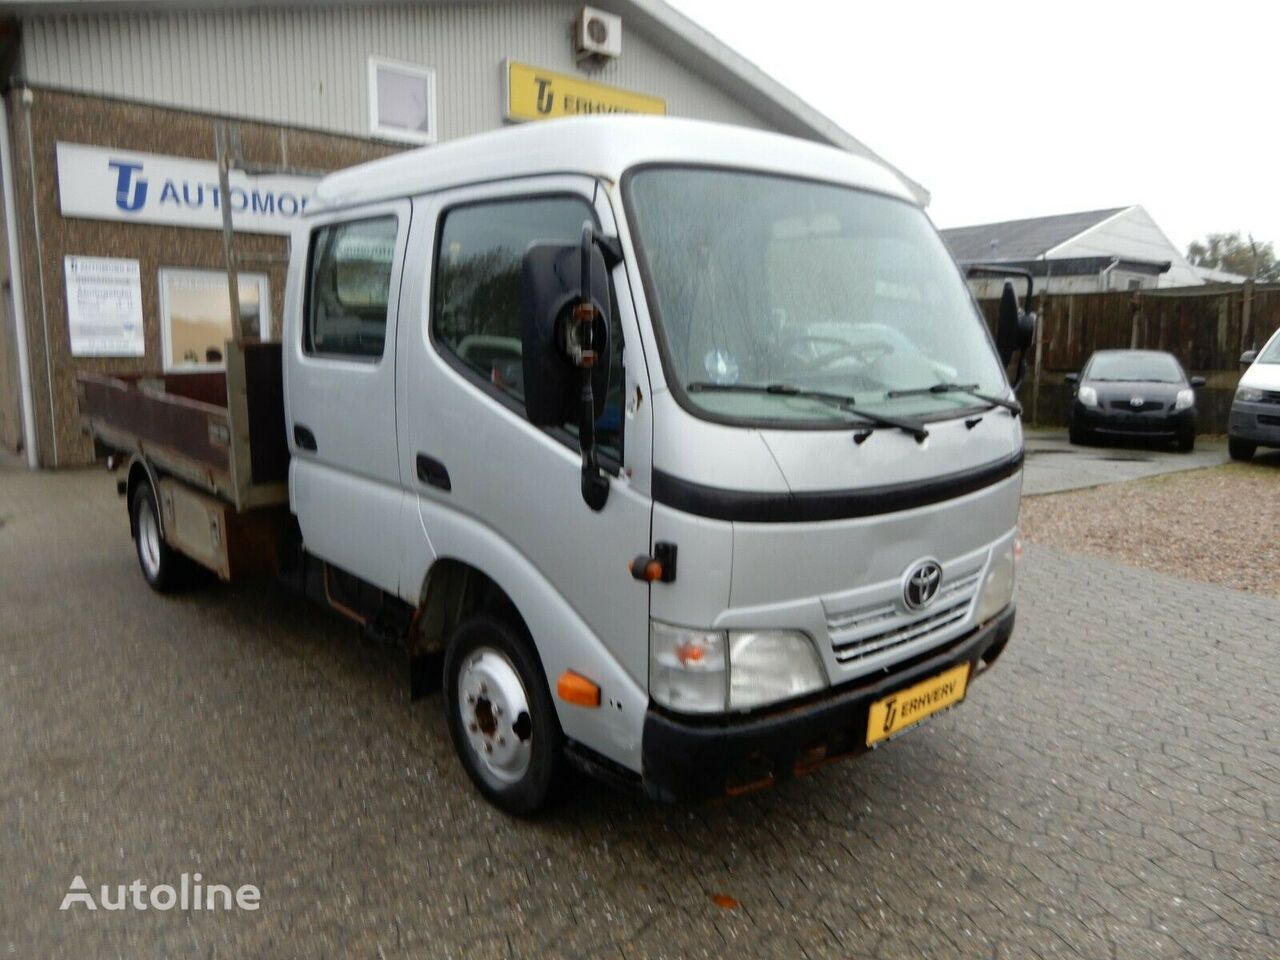 TOYOTA DYNA 150 3,0 D-4D D.CAB flatbed truck < 3.5t